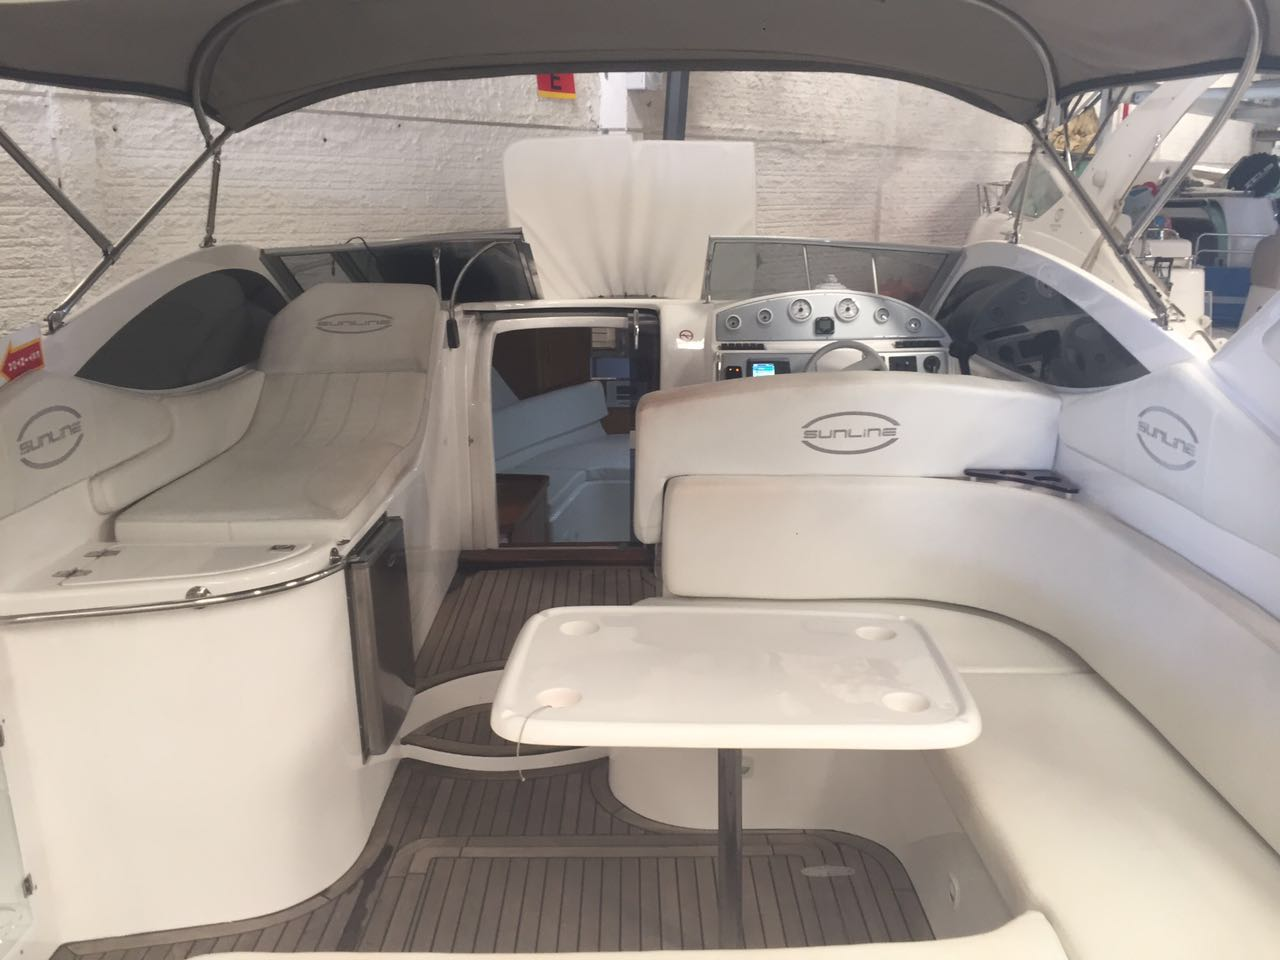 Sunline Boats 315